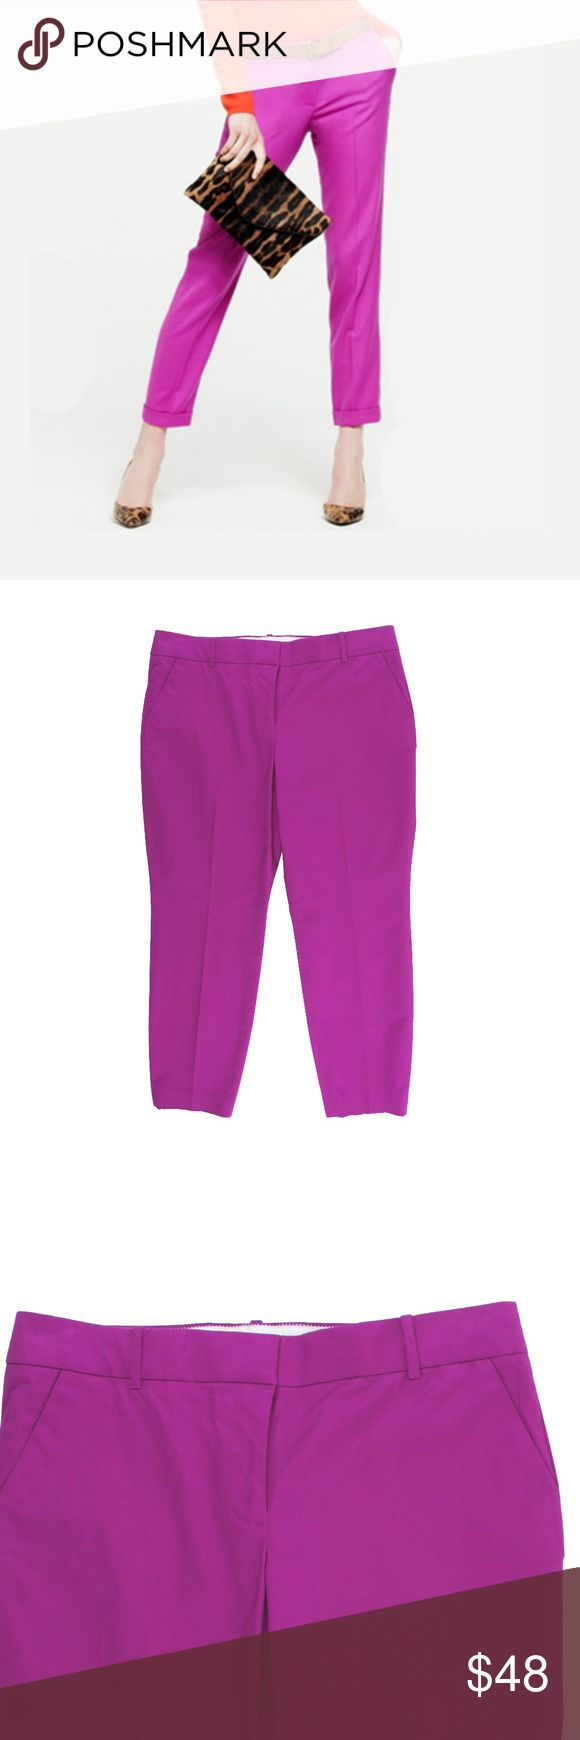 """New JCREW Cafe Capri Pants in Bright Dahlia Pink Size -12  These new bright dahlia (which is like a pinkish purple) cafe capri pants from JCREW feature:  The classic cropped pant in crisp, clean cotton—your closet needs at least one pair.      Cotton with a hint of stretch.     Machine wash.     Import.     Fitted through hip and thigh with a cropped straight leg.  Measures:   Waist: 36""""  Rise: 10""""  Hips: 44""""  Inseam: 27"""" J. Crew Pants Capris"""